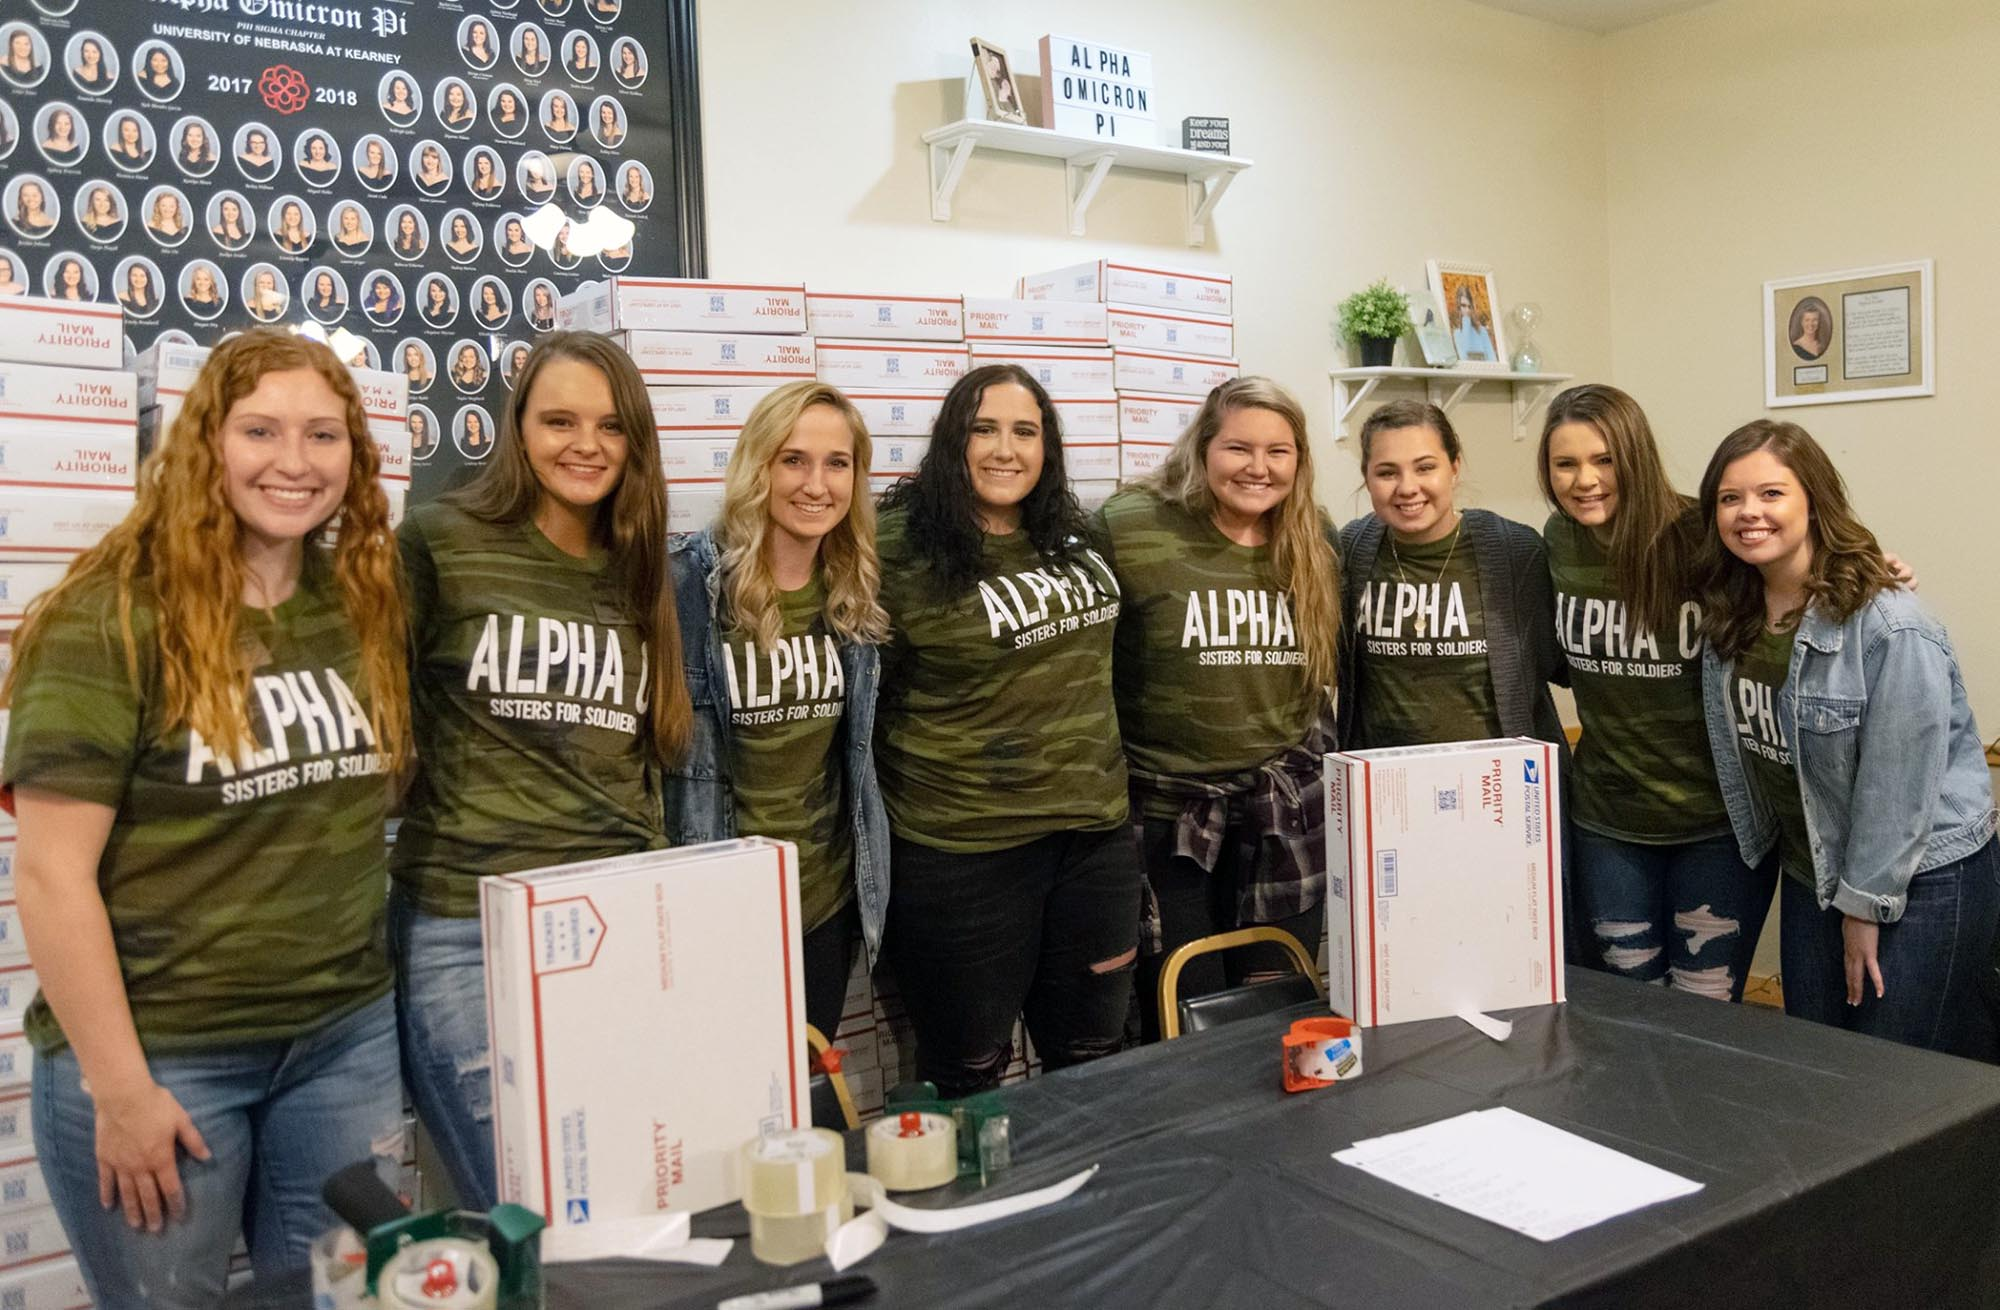 UNK's Alpha Omicron Pi sorority hopes to send 450 care packages to U.S. military members serving overseas through its Sisters for Soldiers project. (Courtesy photo)